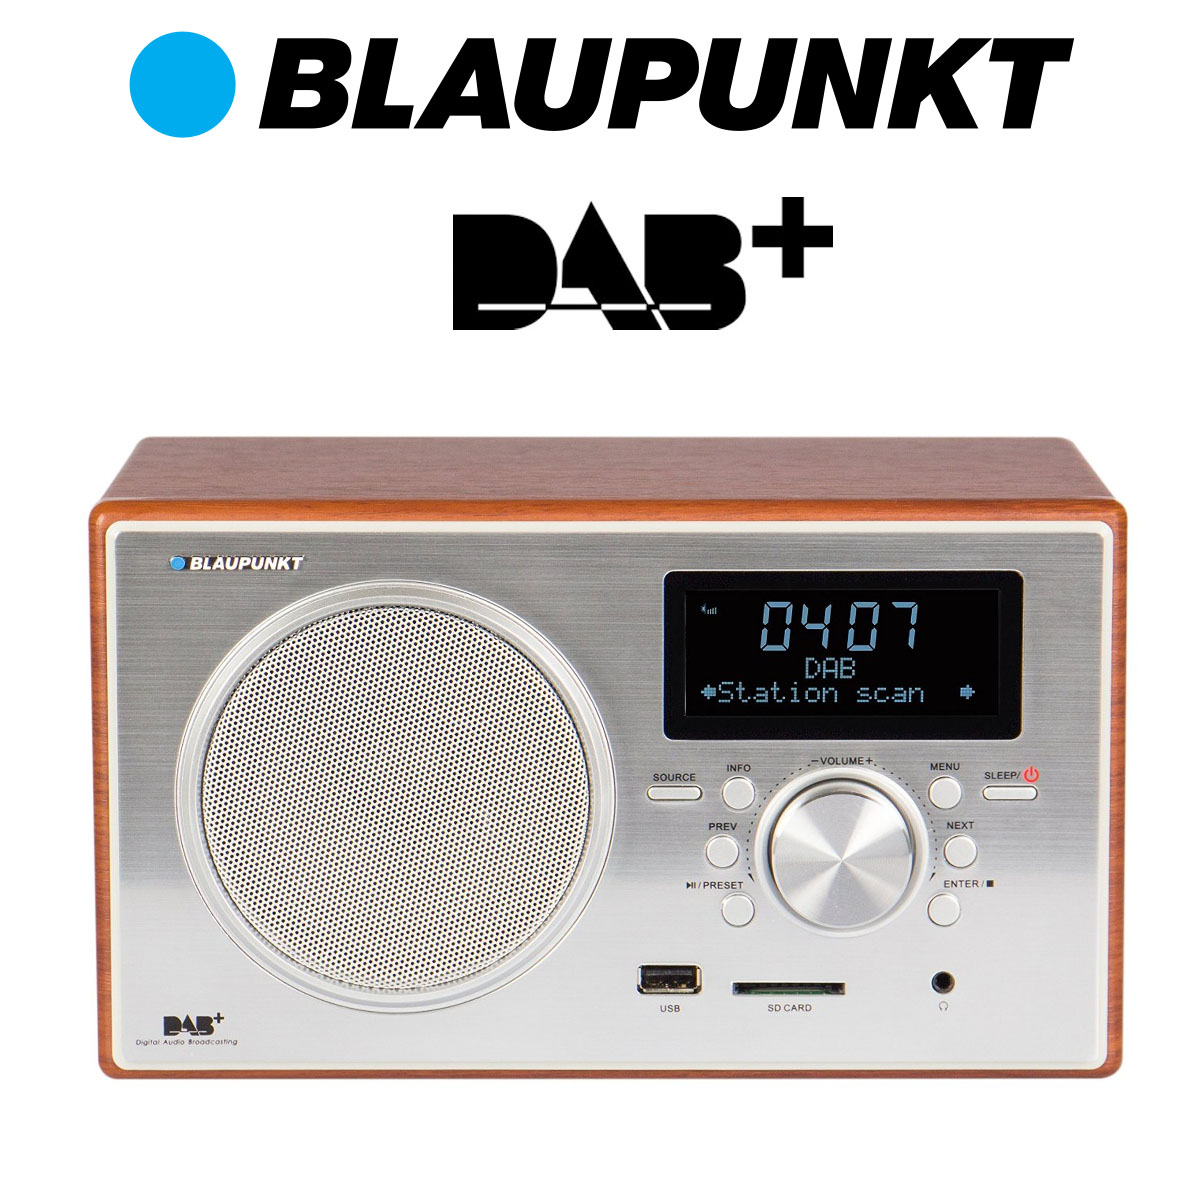 das blaupunkt rxd 35 dab radio test. Black Bedroom Furniture Sets. Home Design Ideas